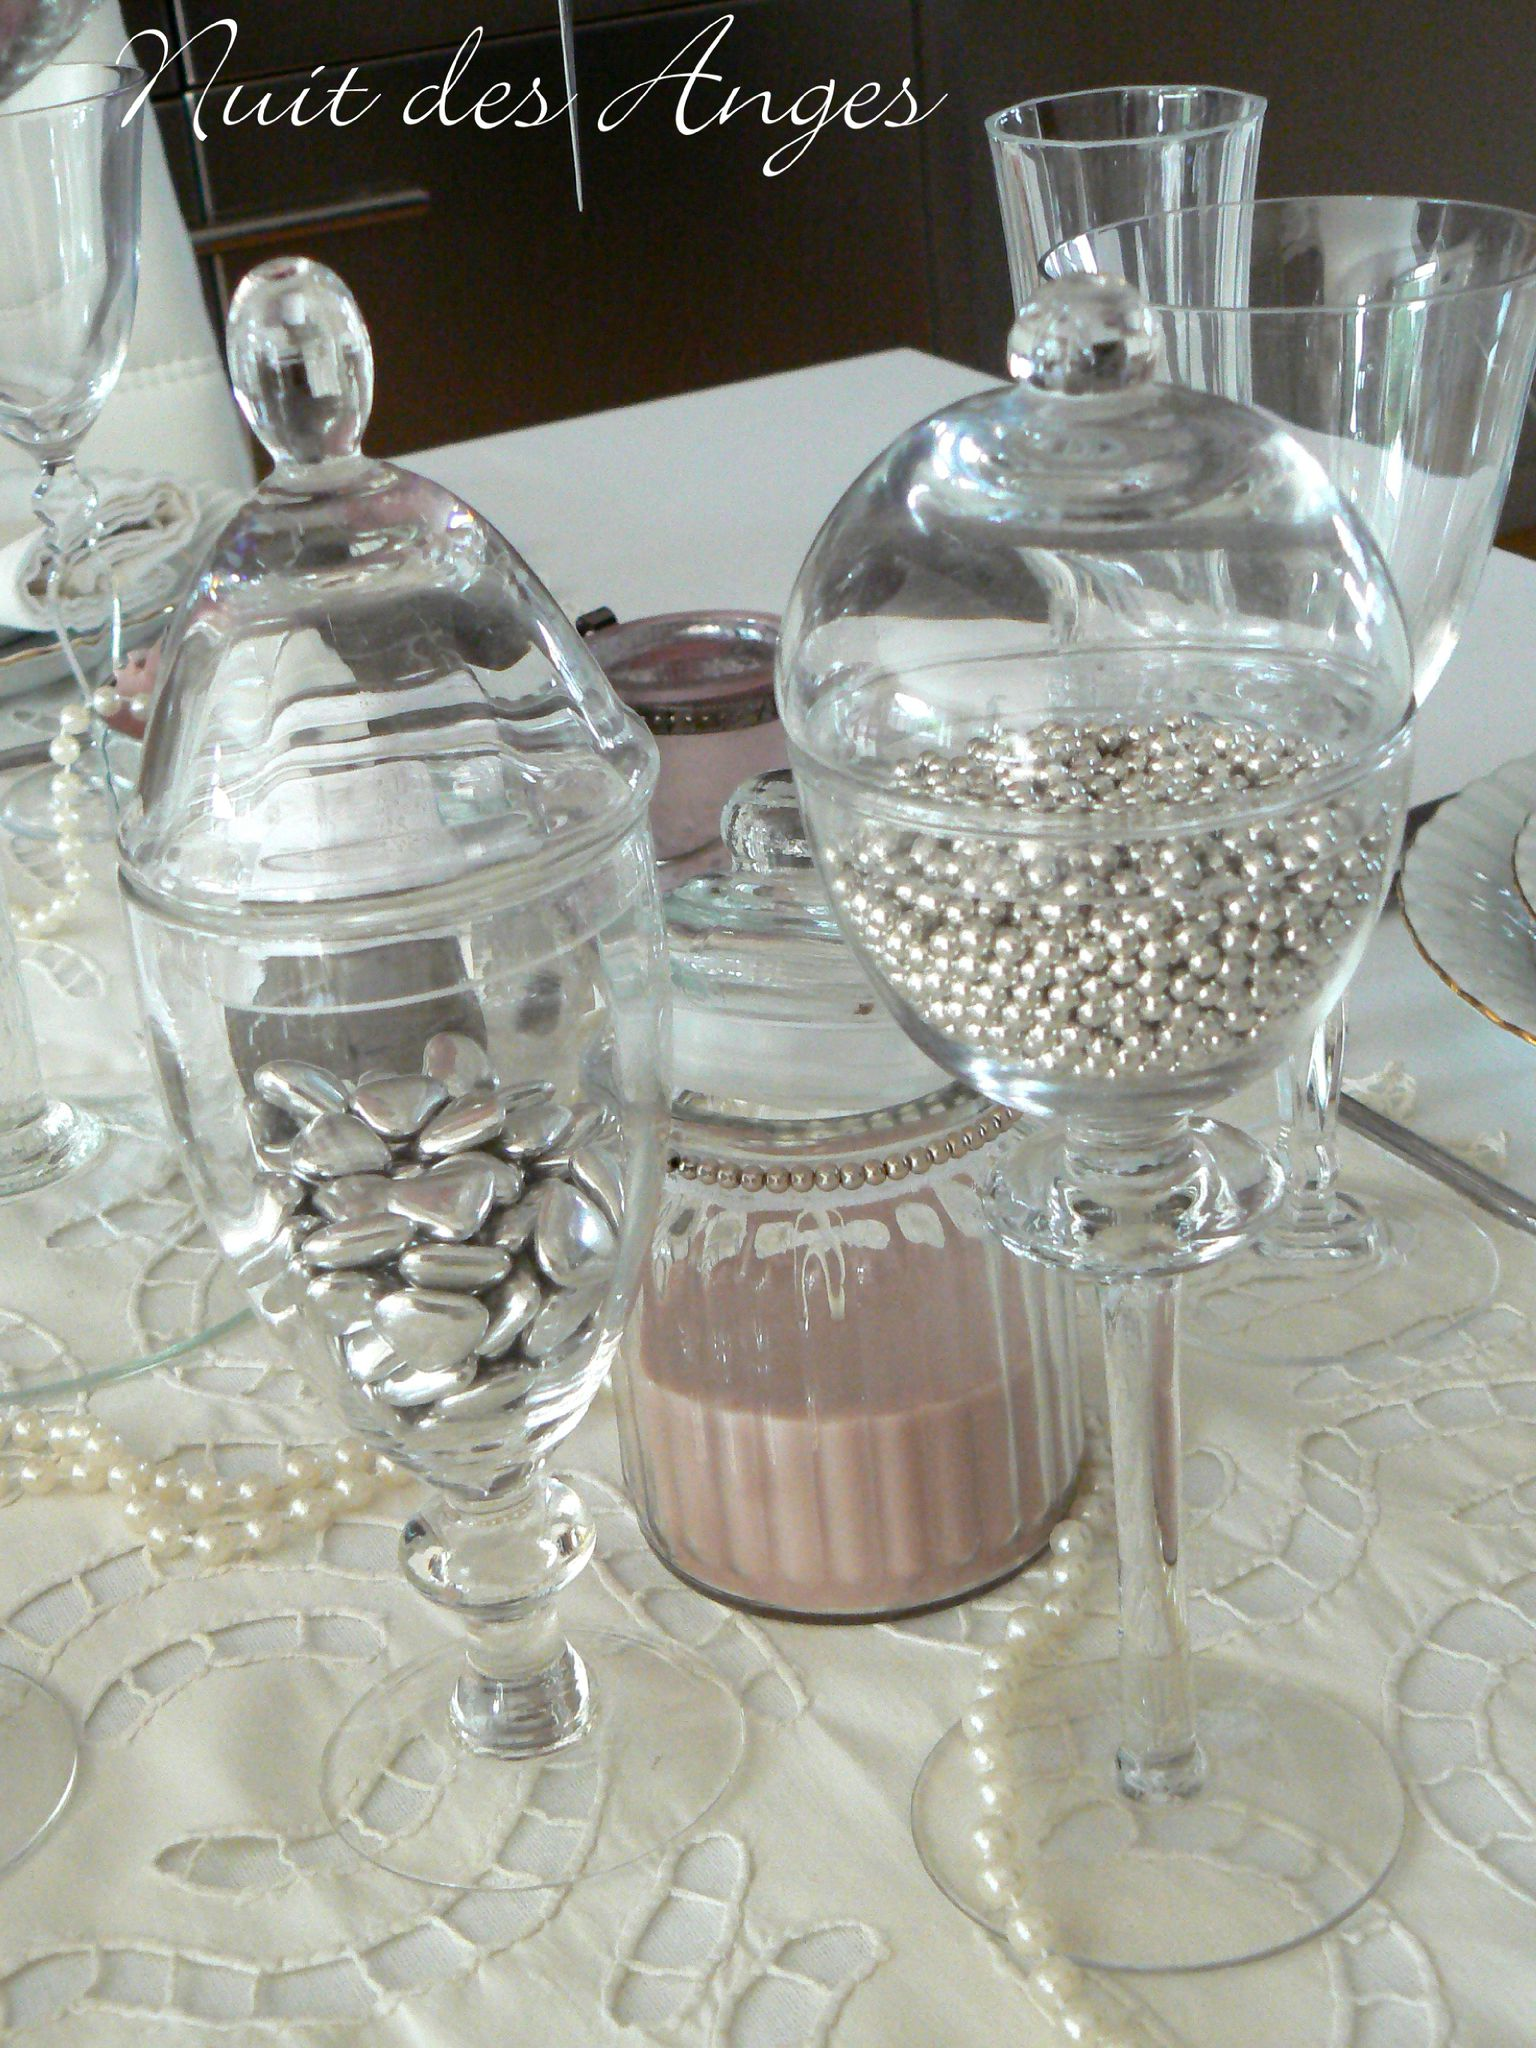 Nuit des anges d coratrice de mariage d coration de table romantique vintage 008 photo de - Photo de table ...